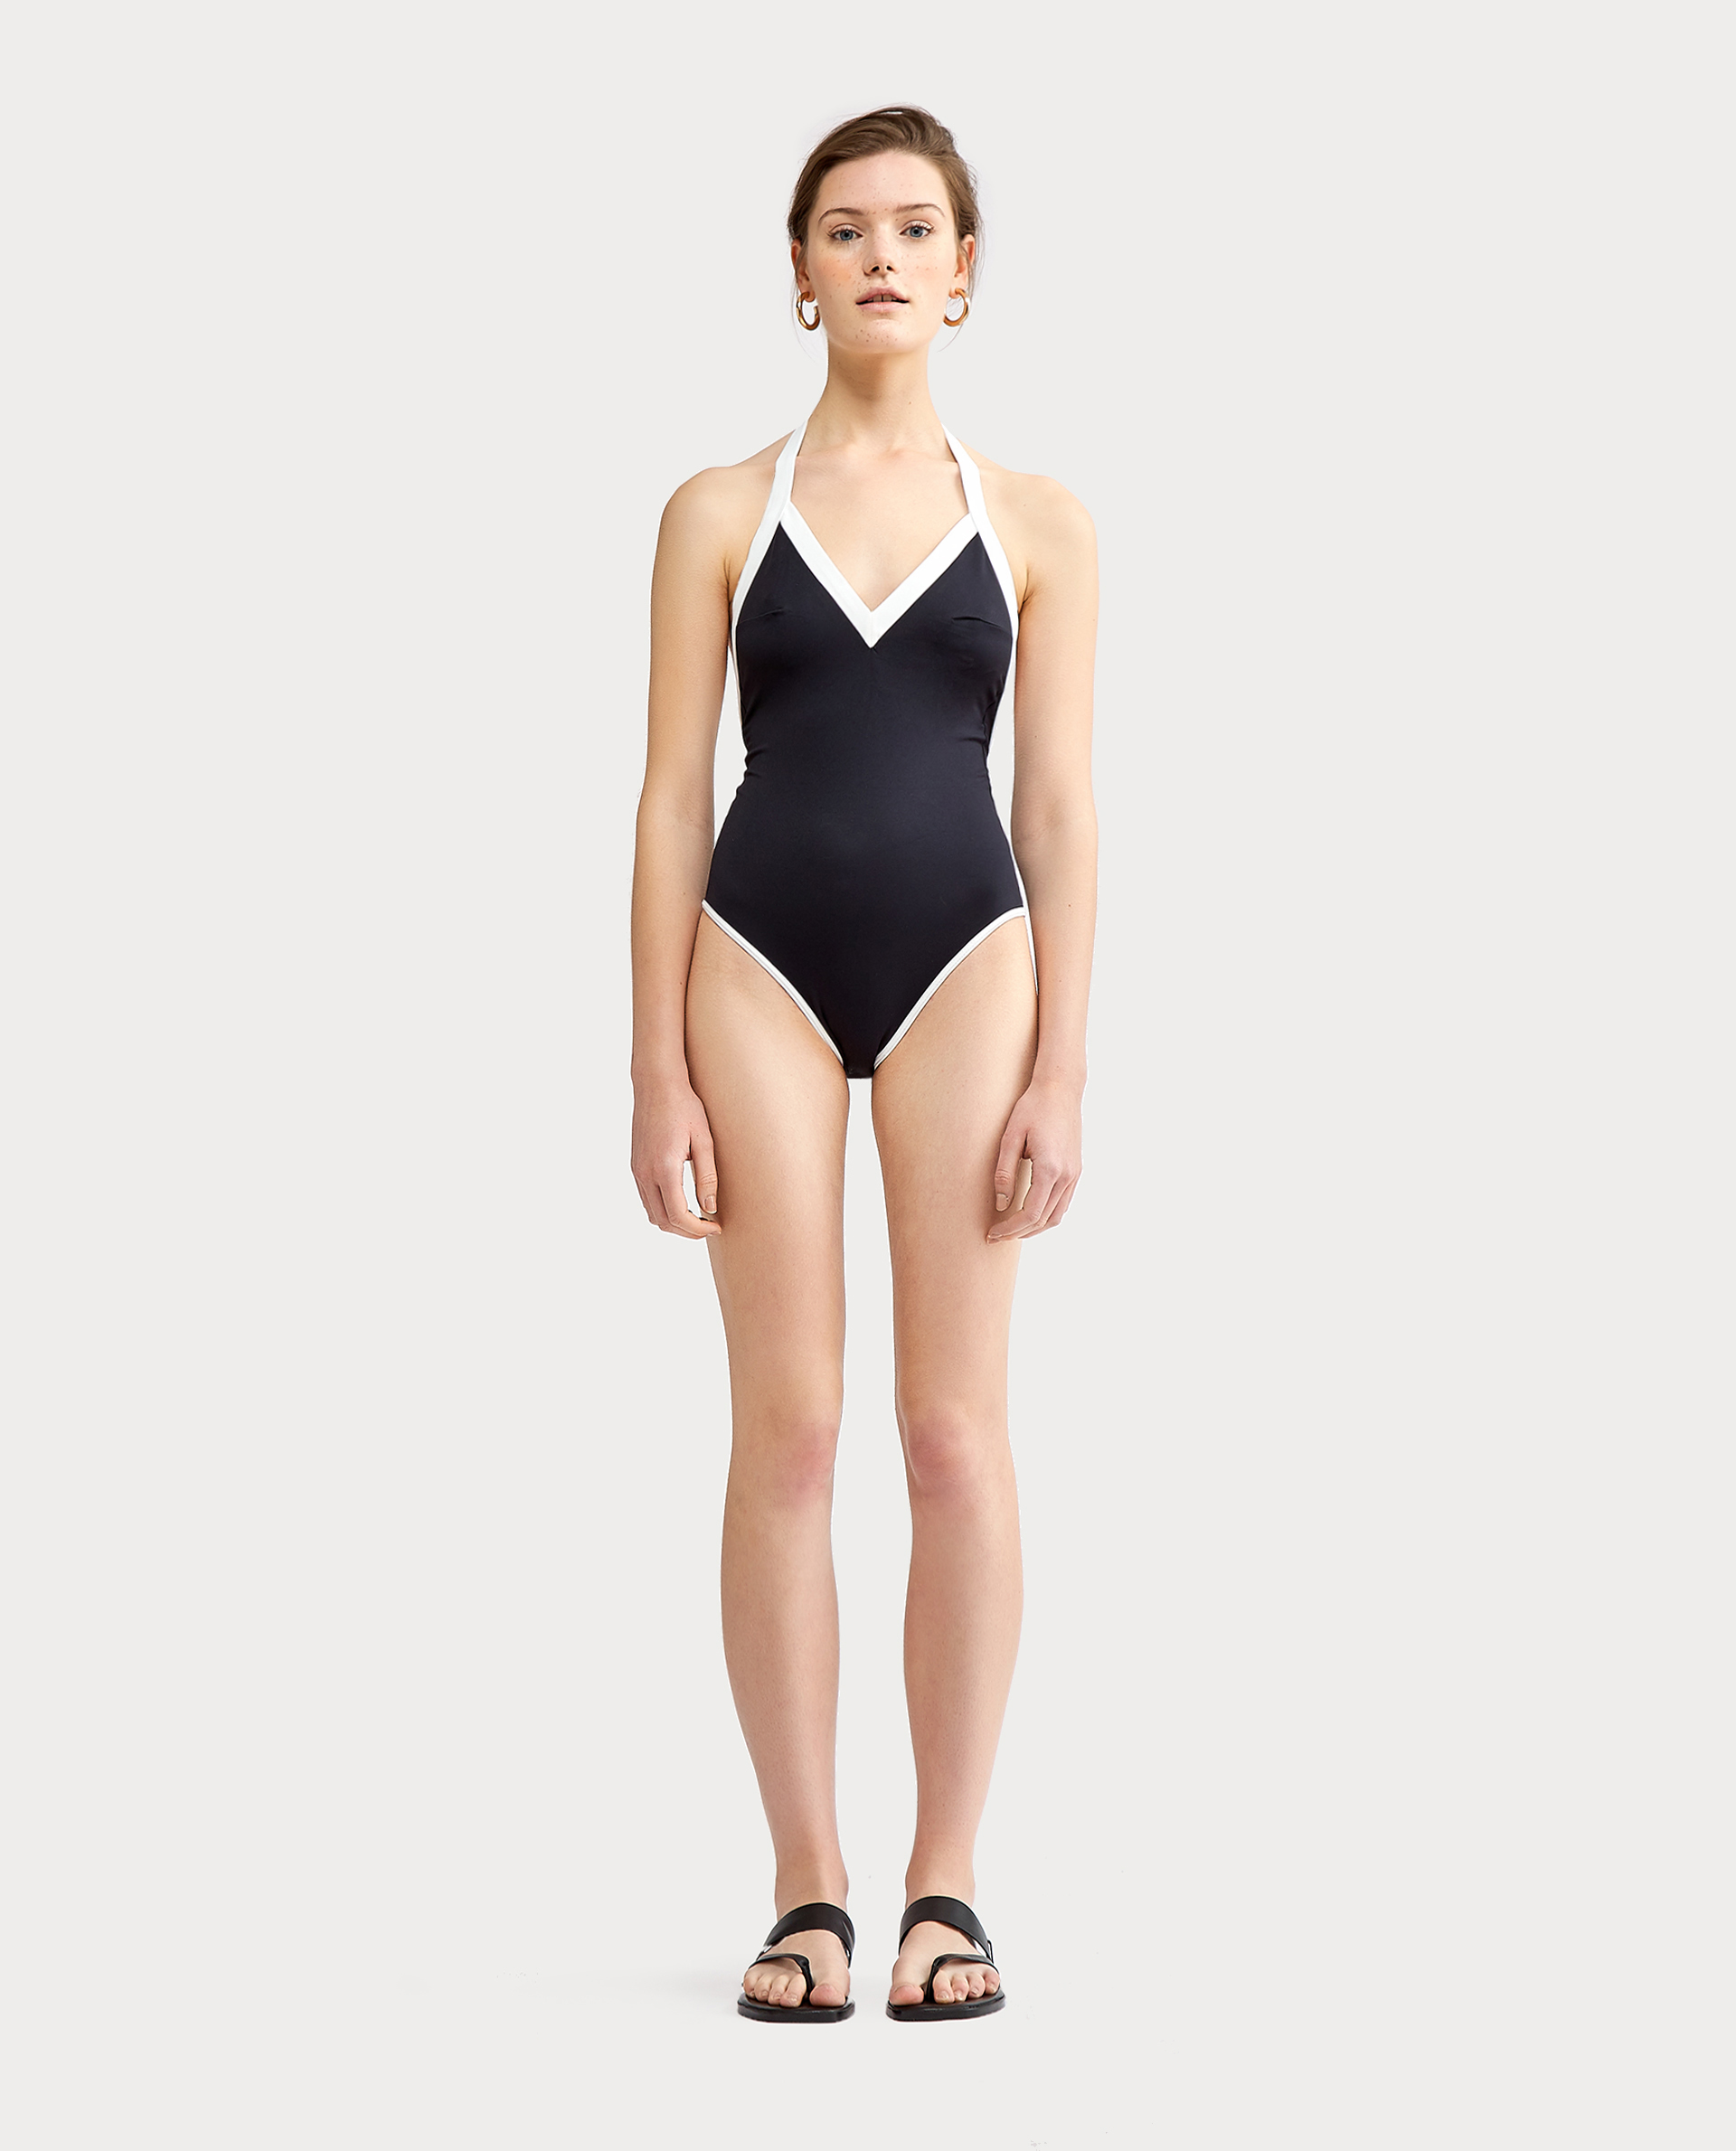 4040d08d69 TWO-TONE SWIMSUIT - WOMEN - CLOTHING - CLOTHING & FOOTWEAR - BEDROOM ...